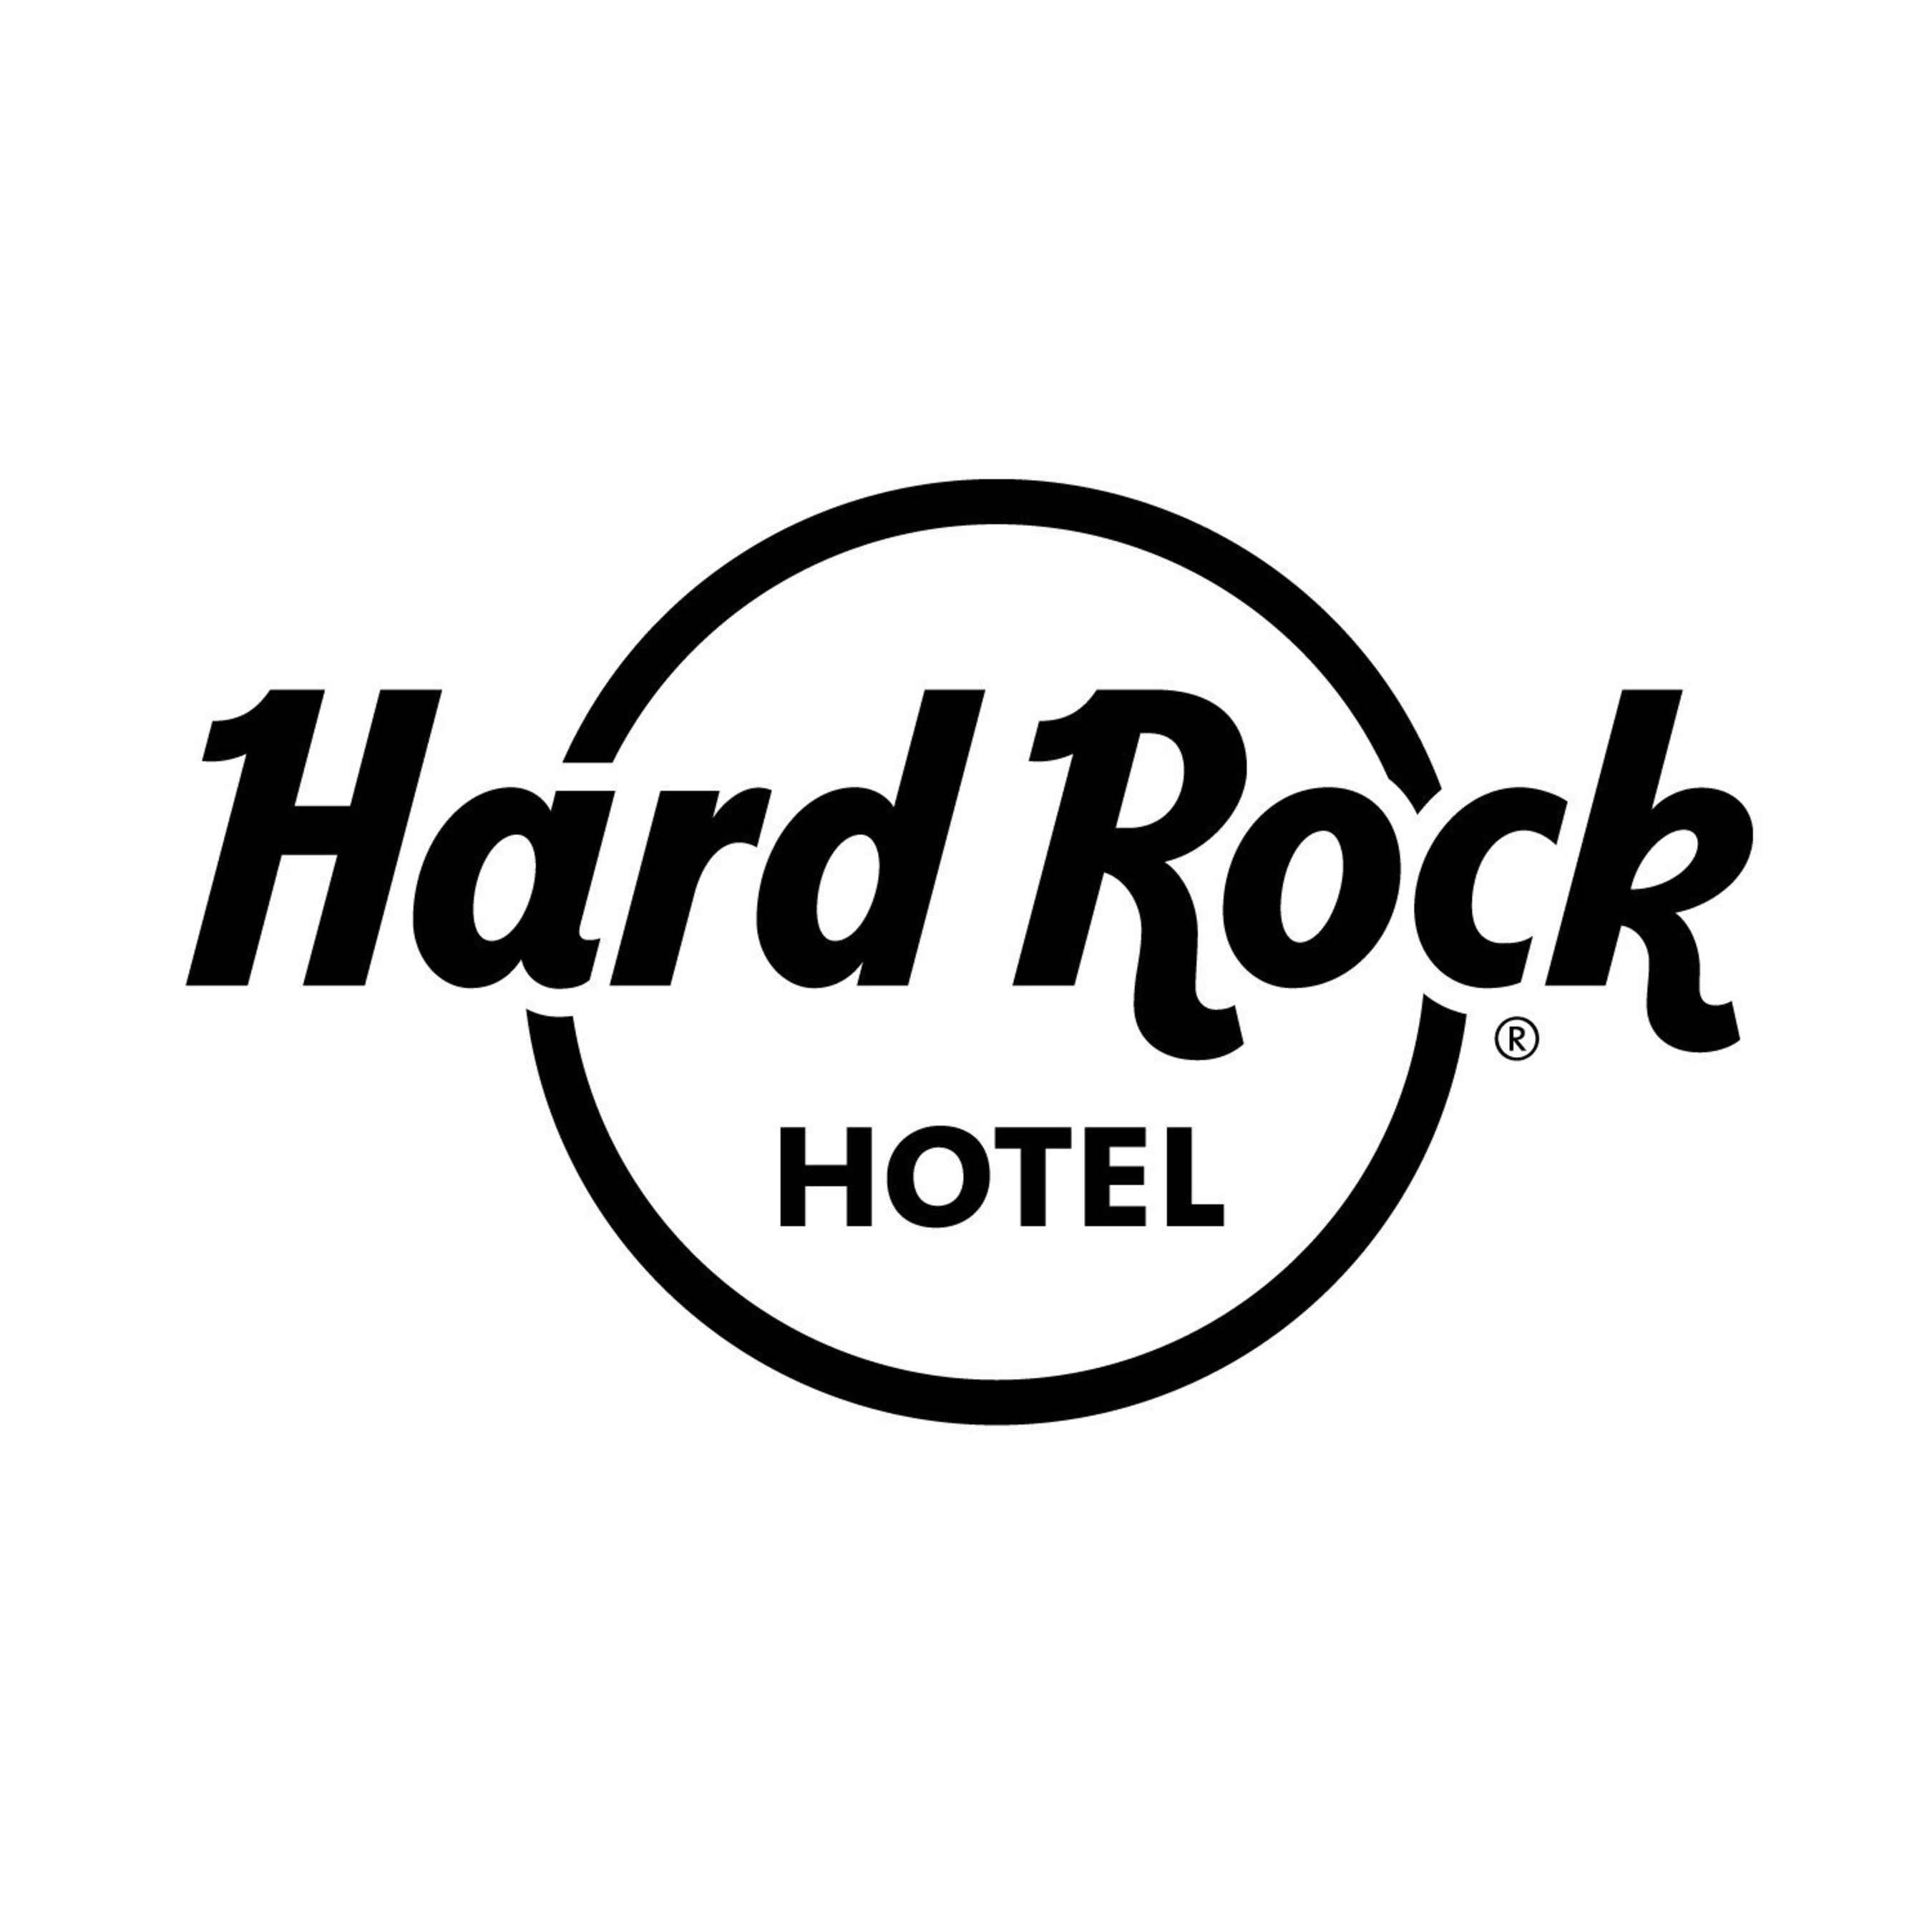 Hard Rock Hotels Throughout Asia Invite Guests to Turn Up